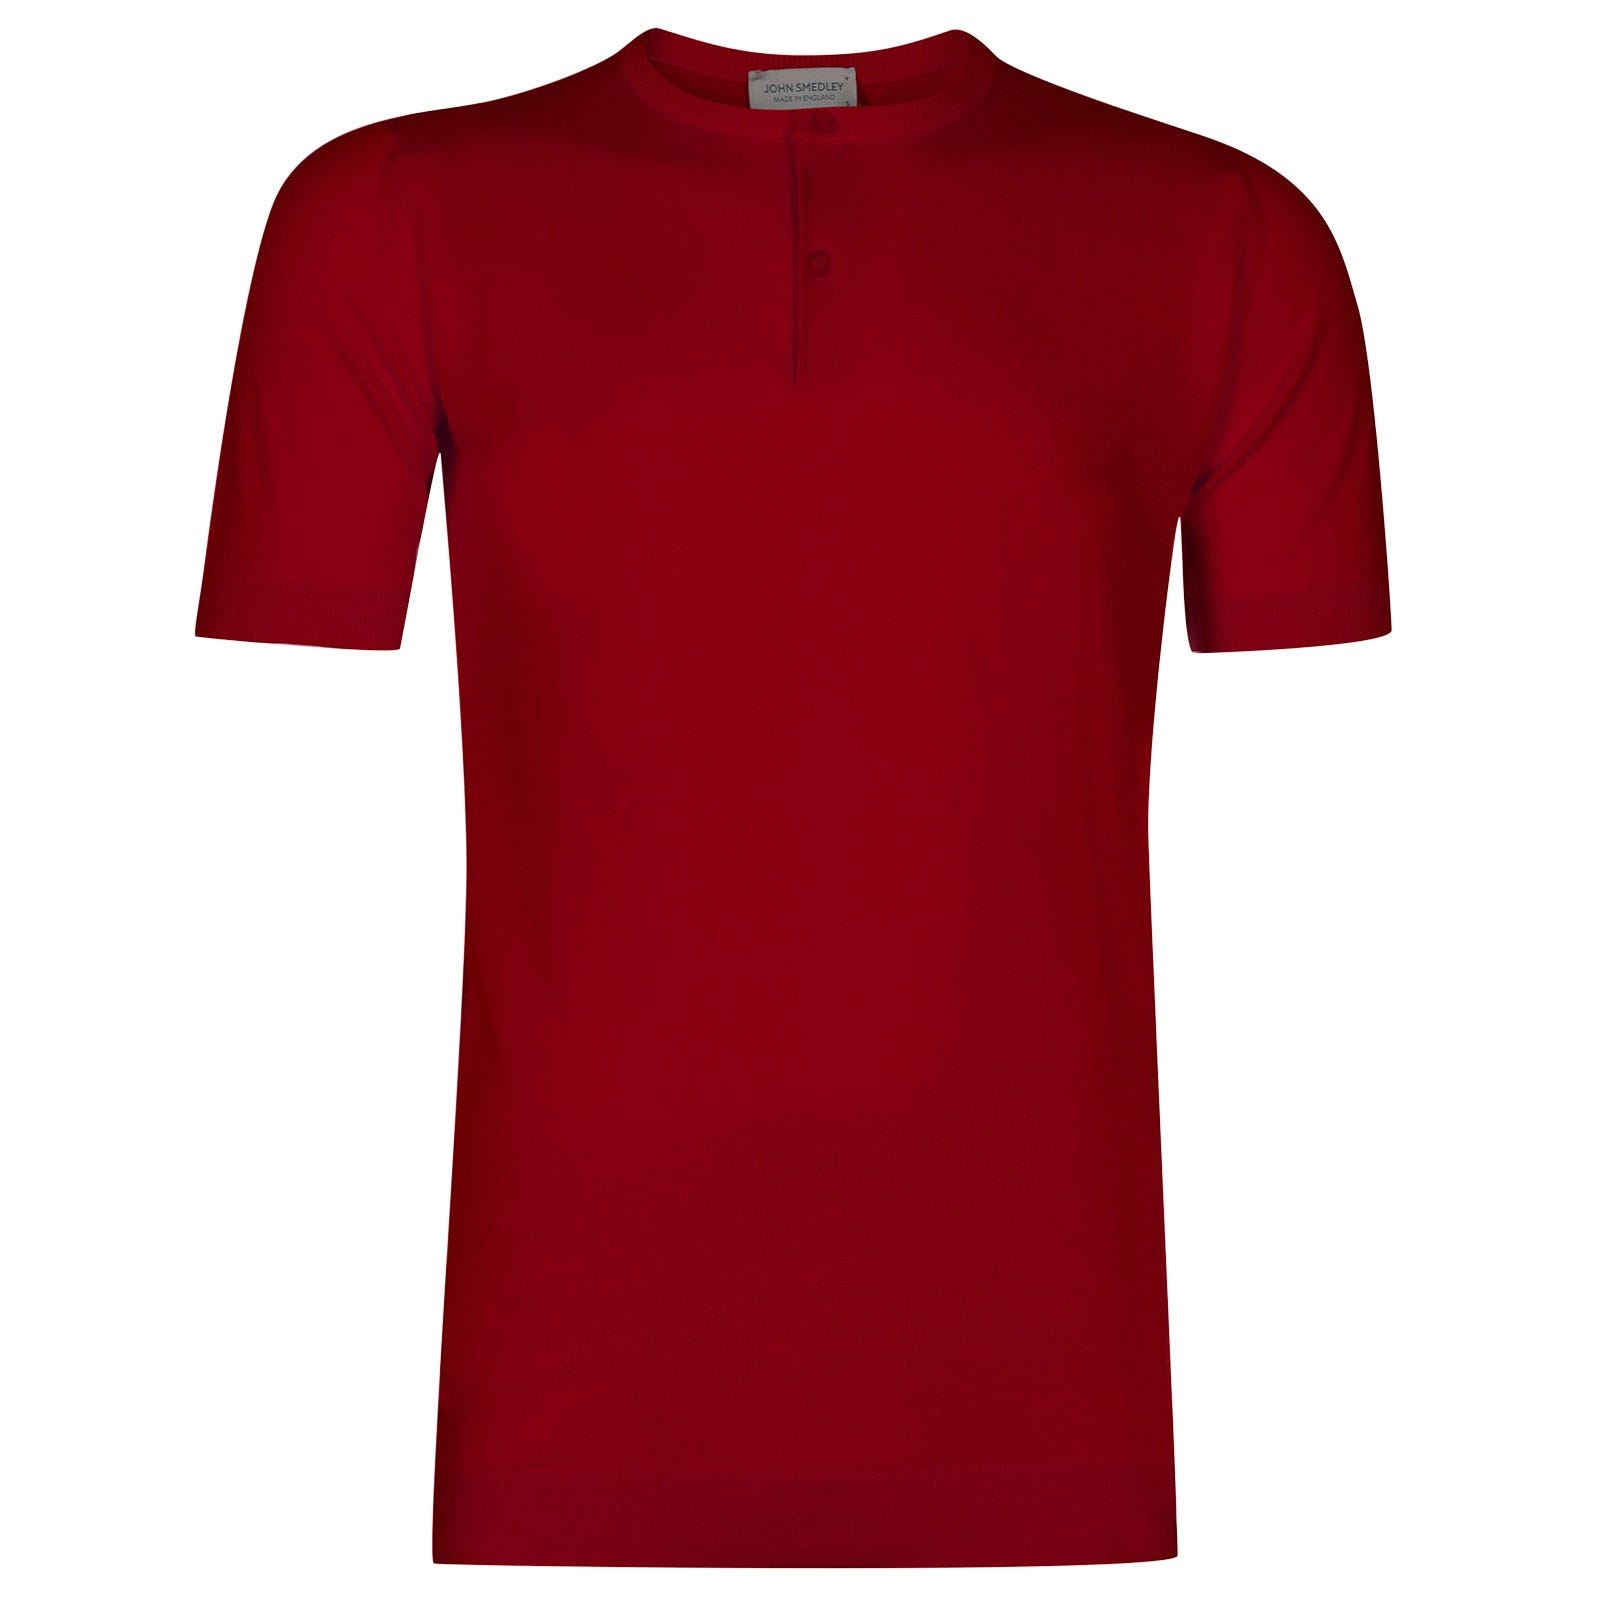 John Smedley Bennett Sea Island Cotton T-shirt in Dandy Red-S